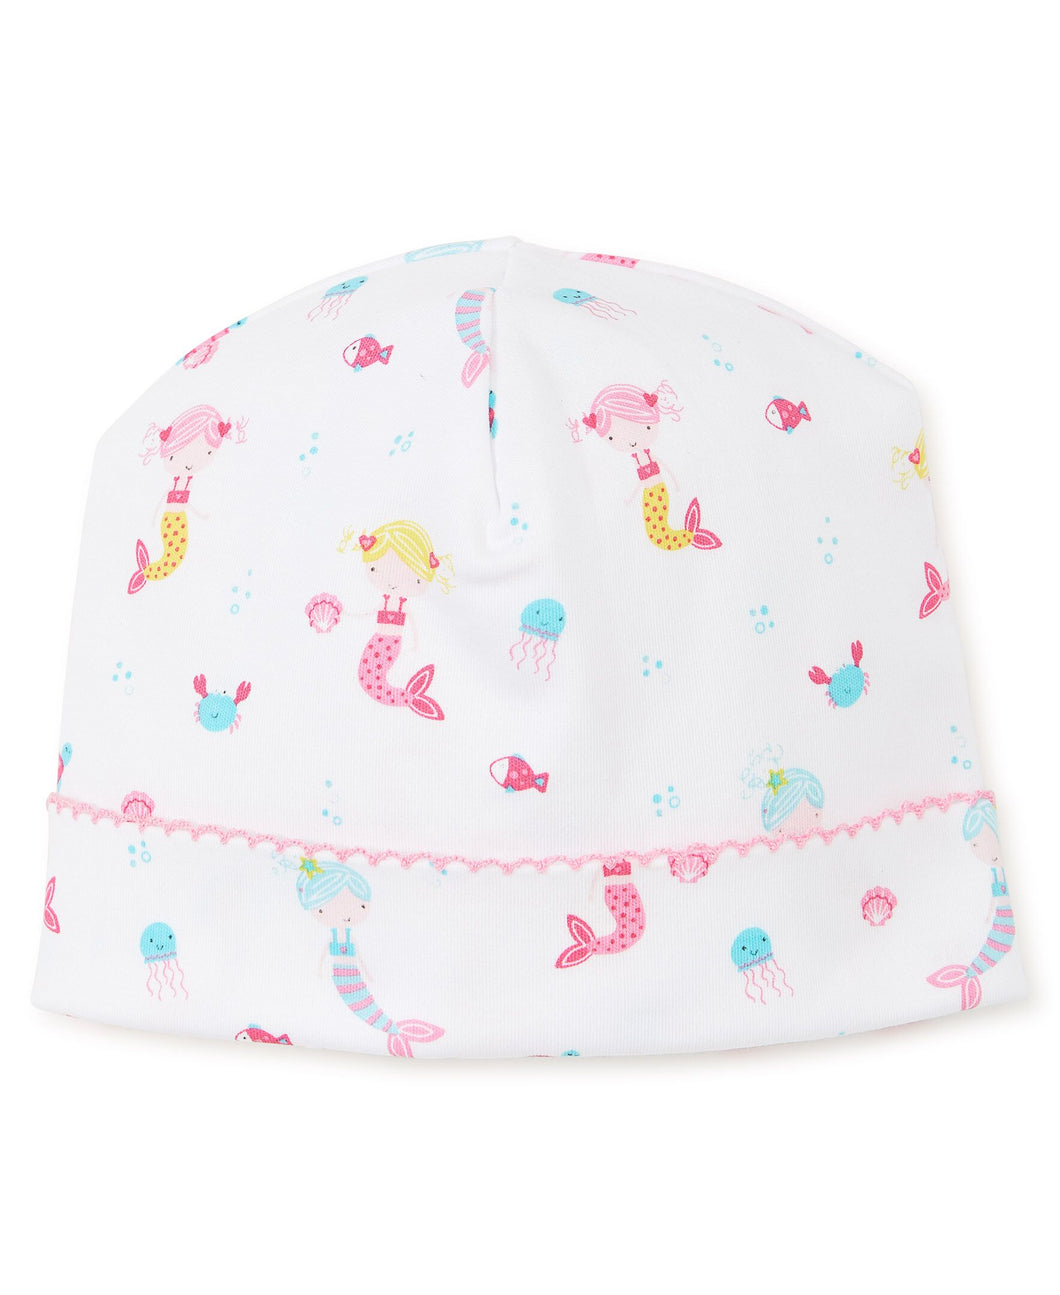 Mermaid Fun Print Hat